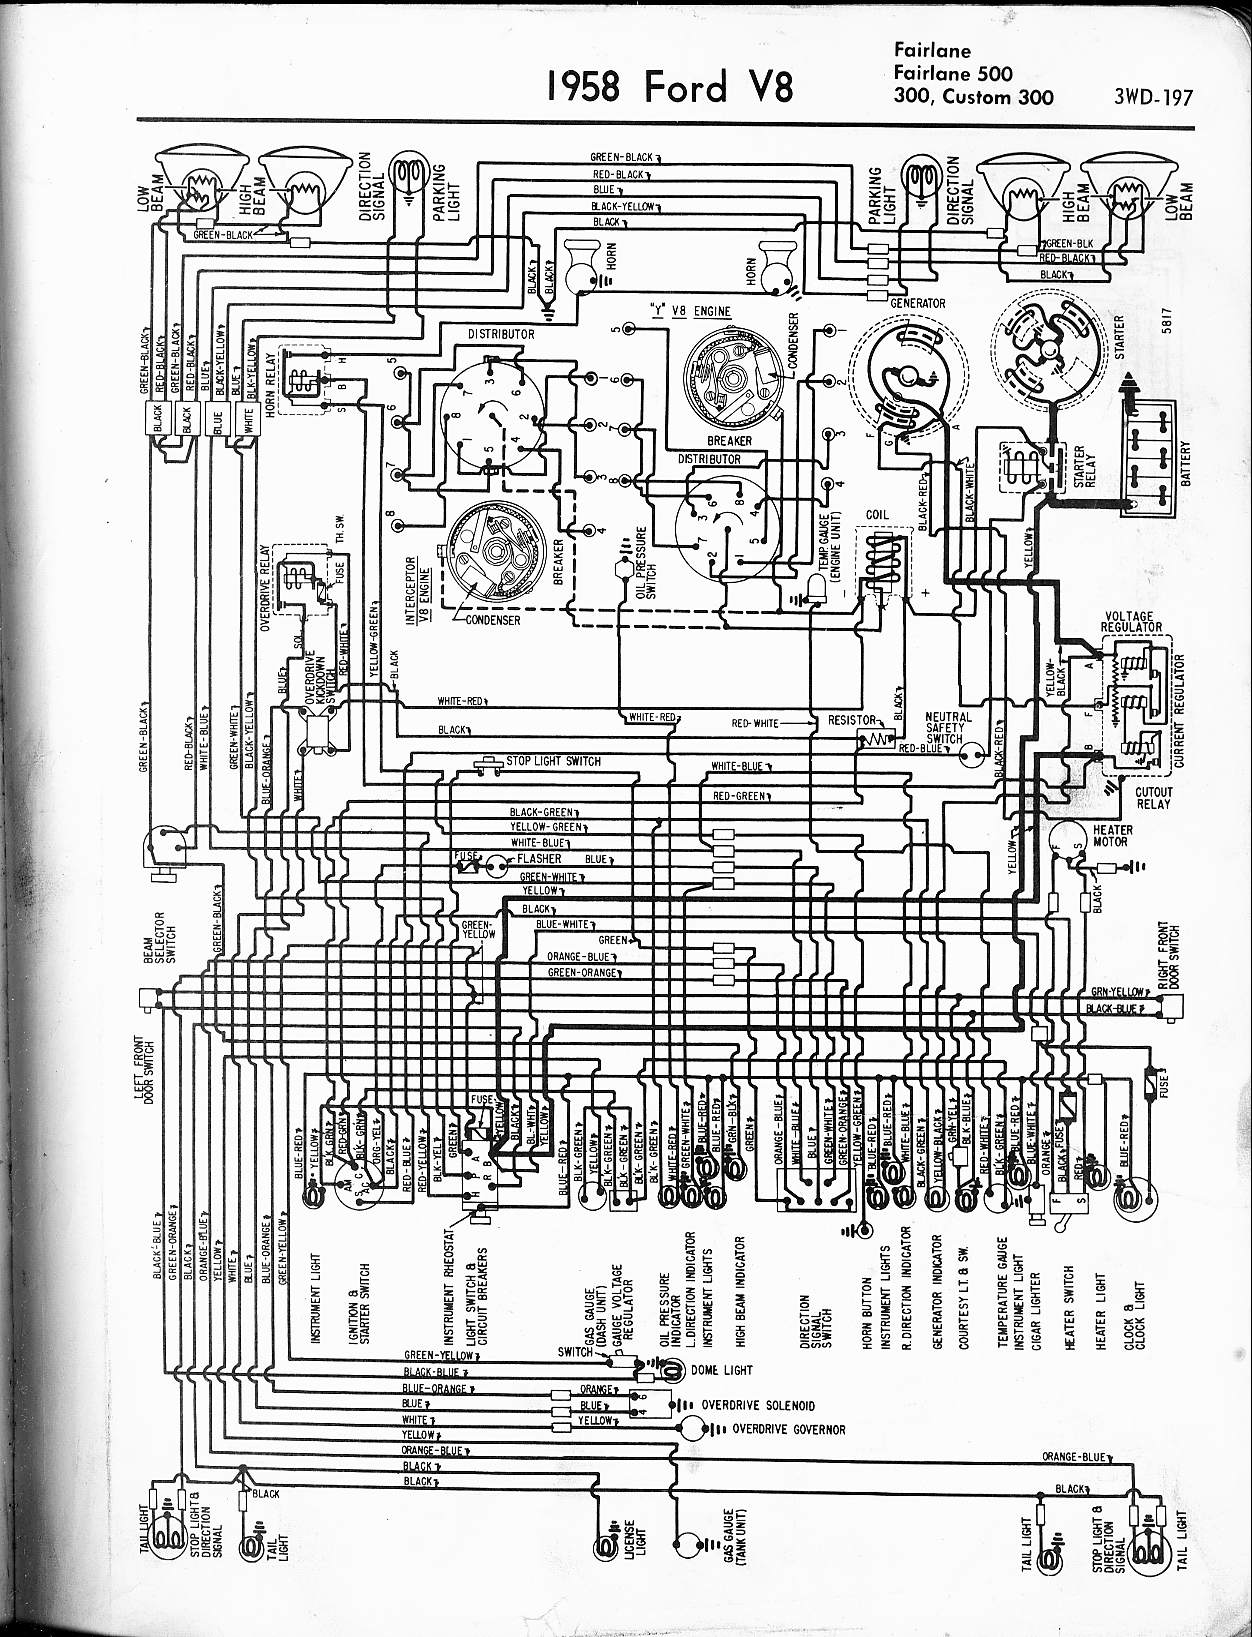 MWire5765 197 57 65 ford wiring diagrams 1966 ford truck wiring diagram at aneh.co